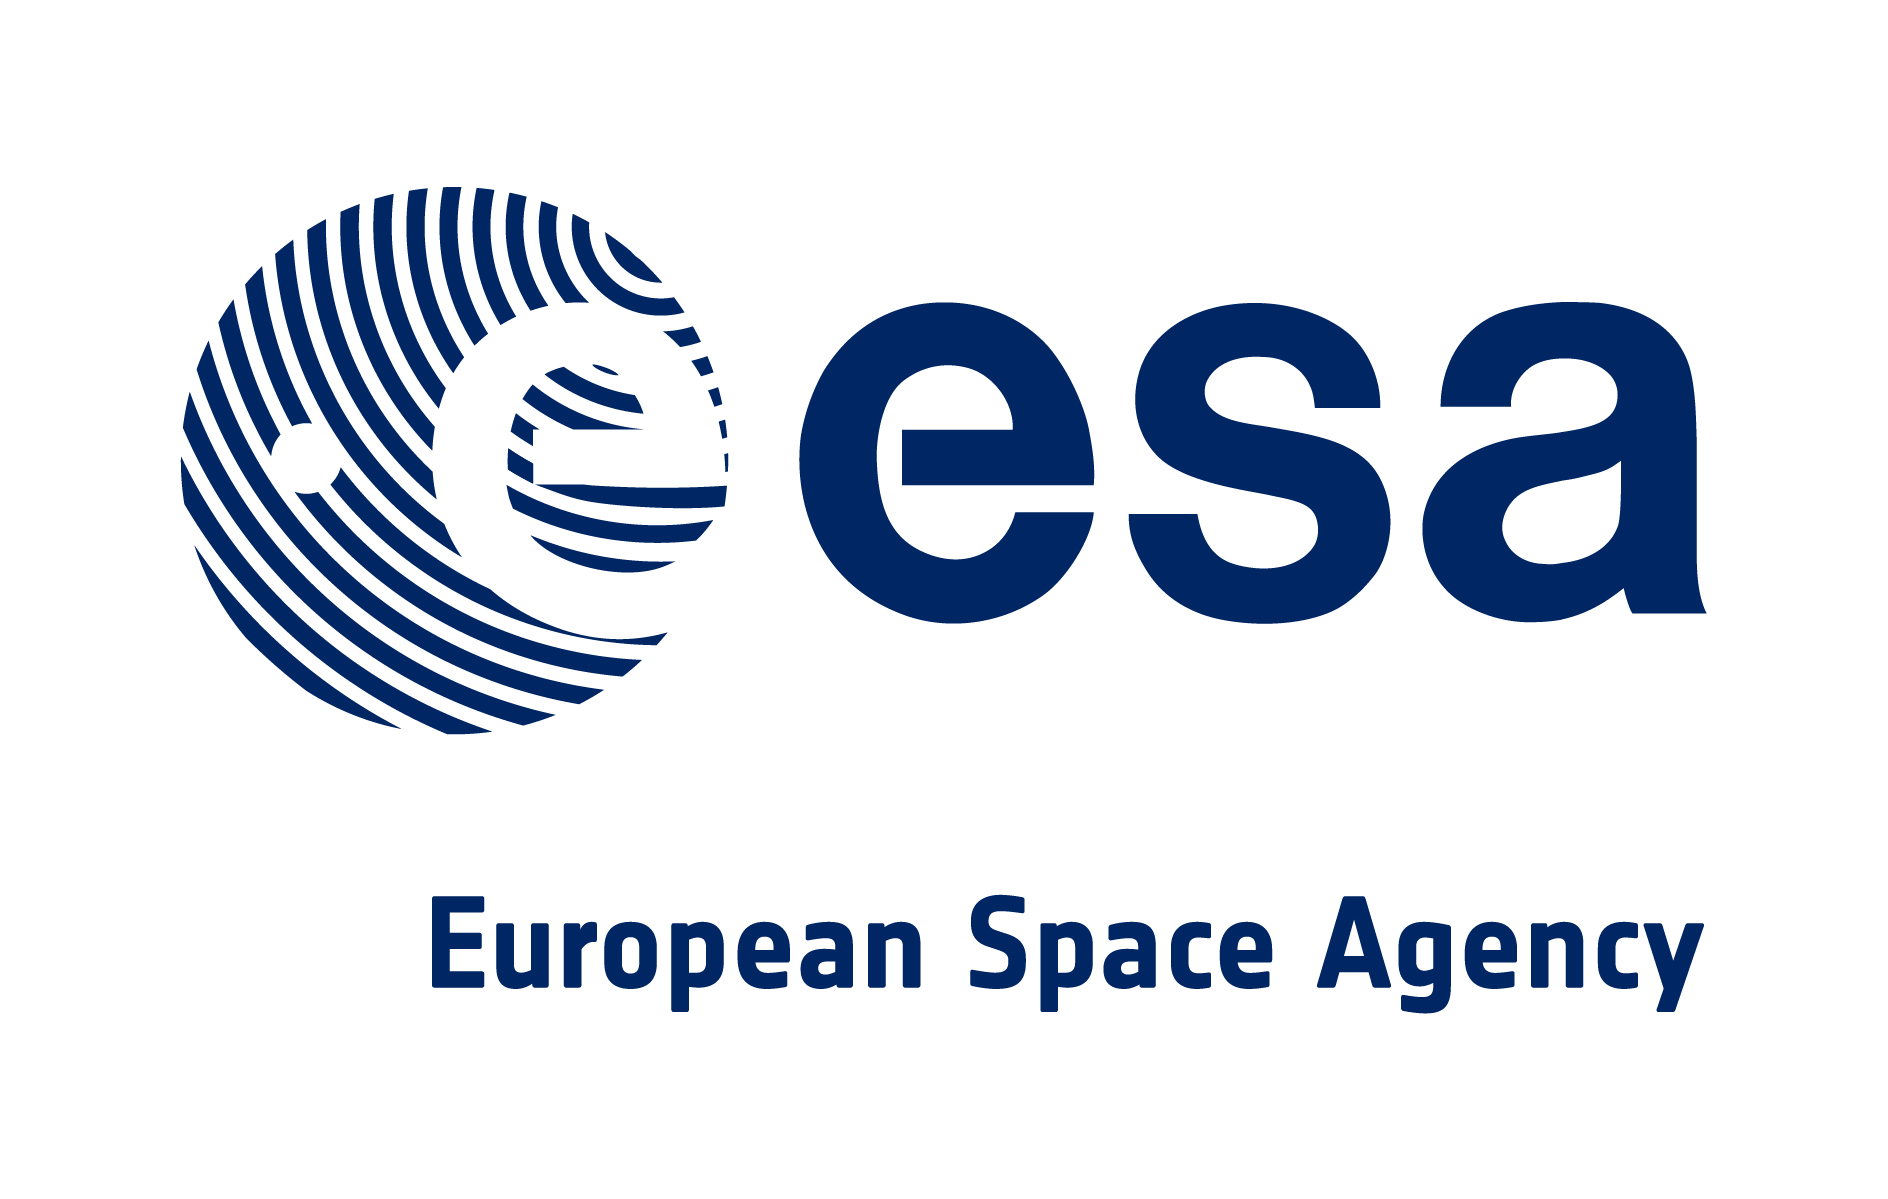 The European Space Agency - Startupbootcamp